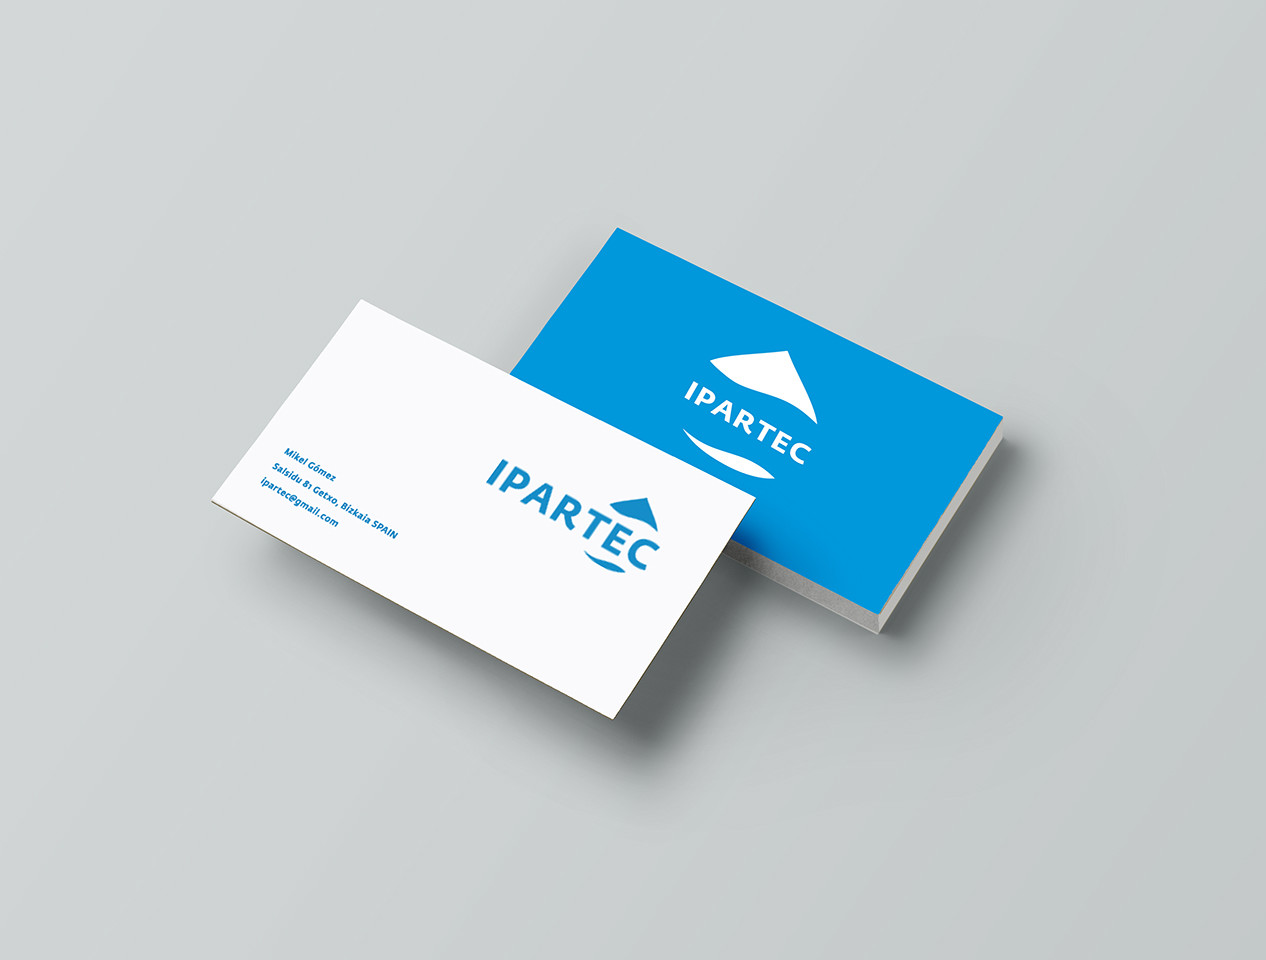 IPARTEC-Business-Card-Mockup